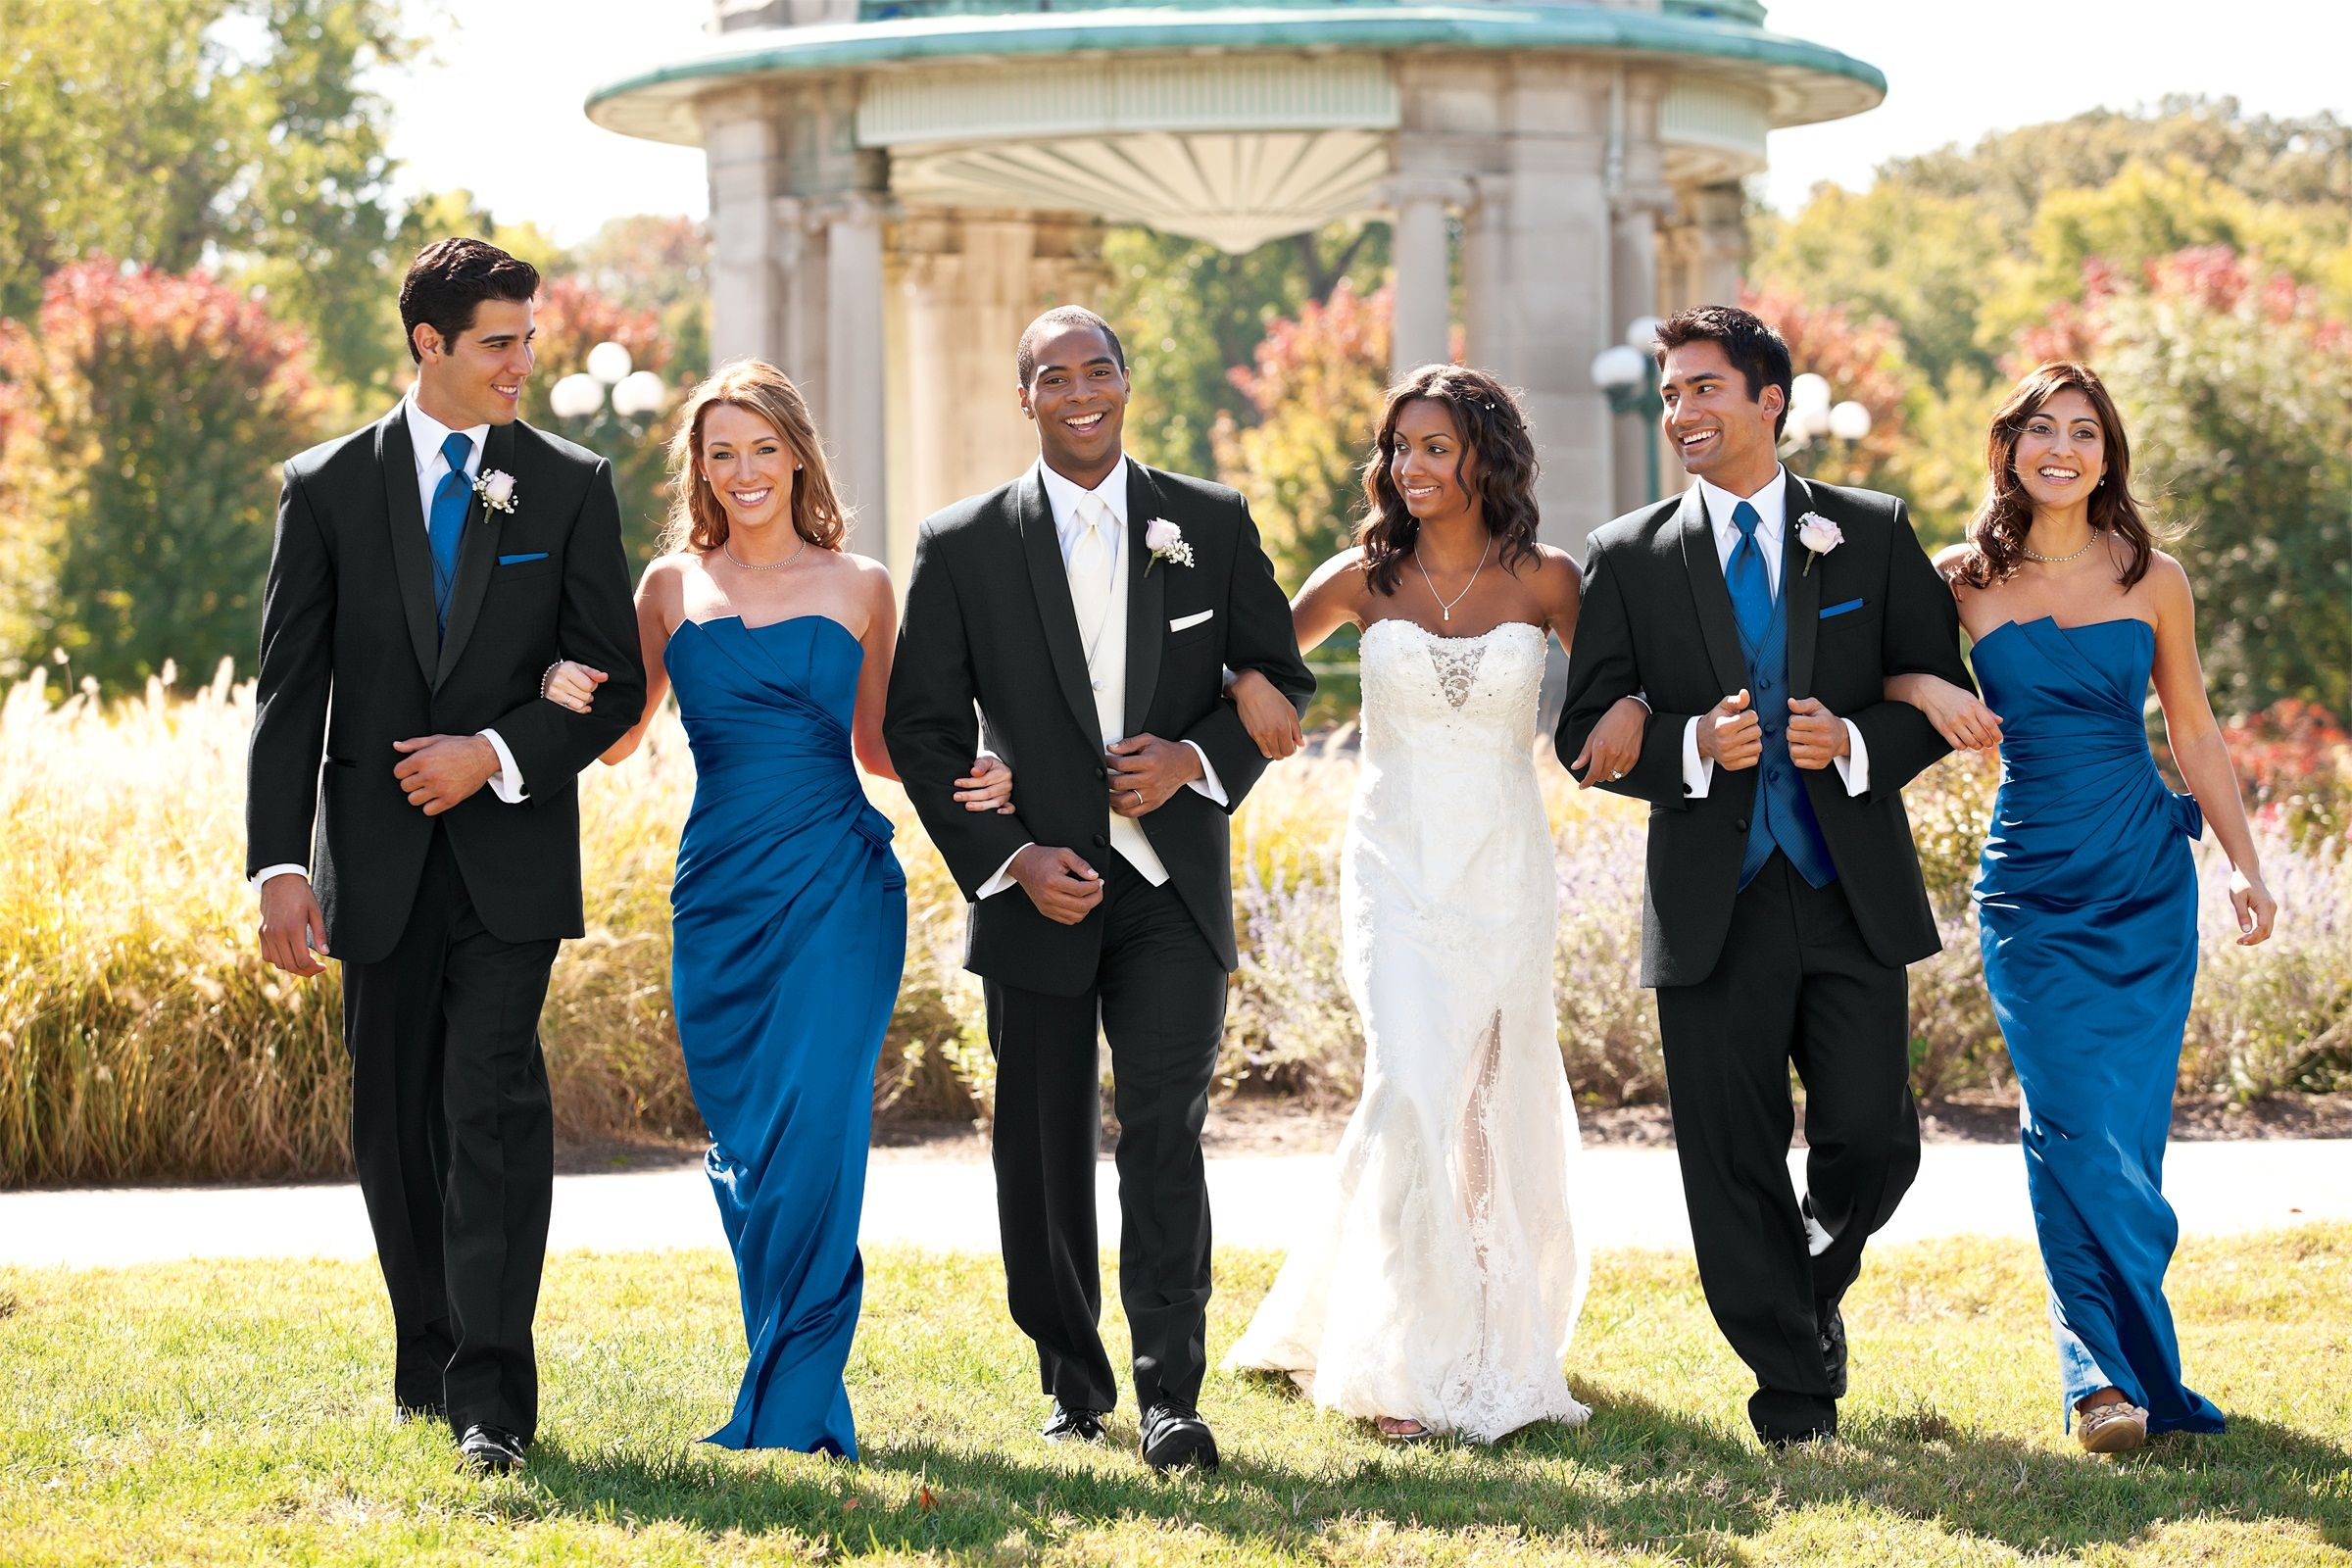 Tuxedo Rentals And Color Matching